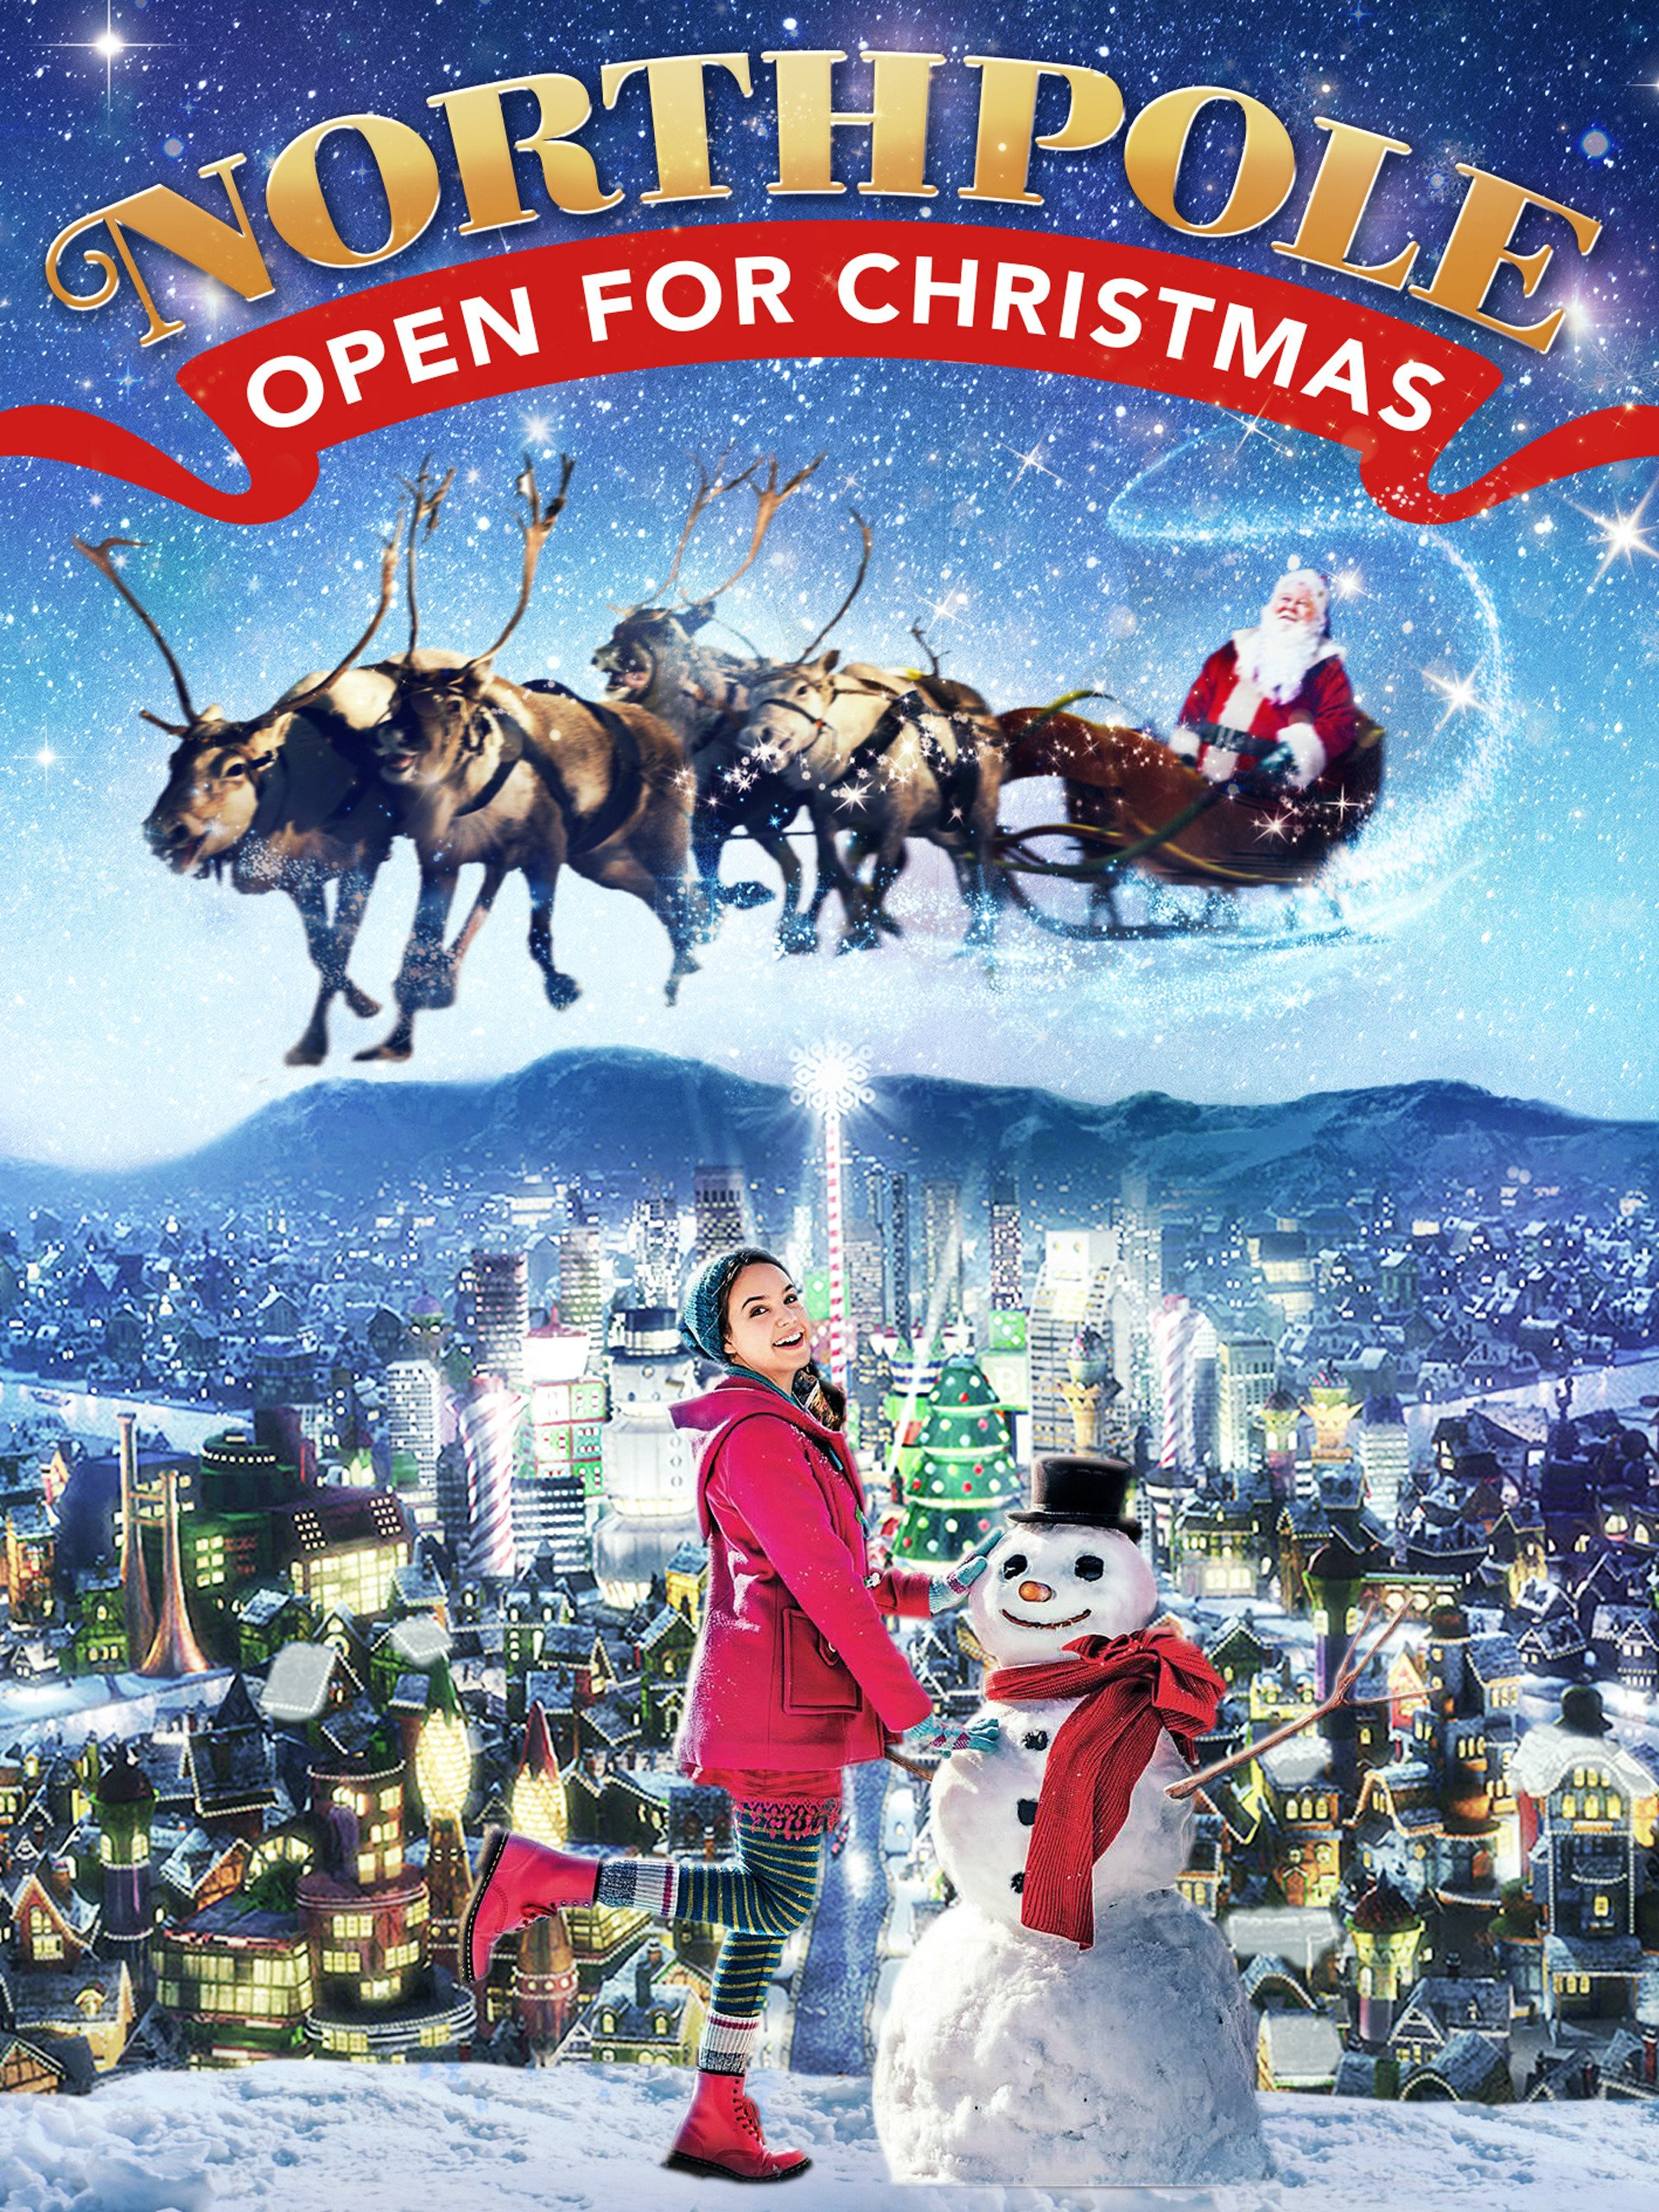 Amazon.co.uk: Watch Northpole: Open For Christmas | Prime Video